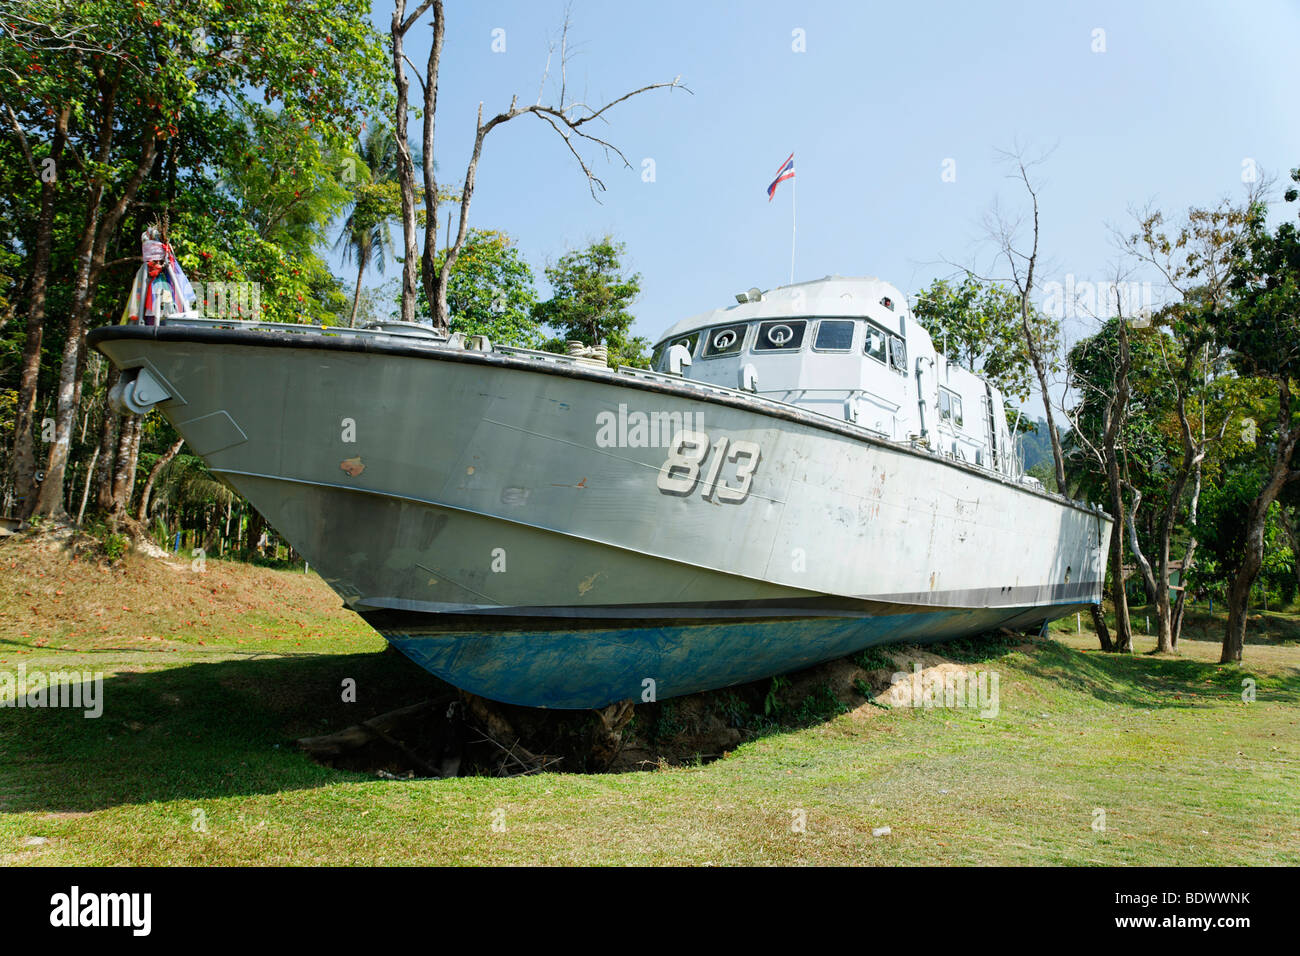 Speedboat of coast guard was landed by the tsunami on 26th of December 2004, today memorial, Khao Lak, Phuket, Thailand, - Stock Image